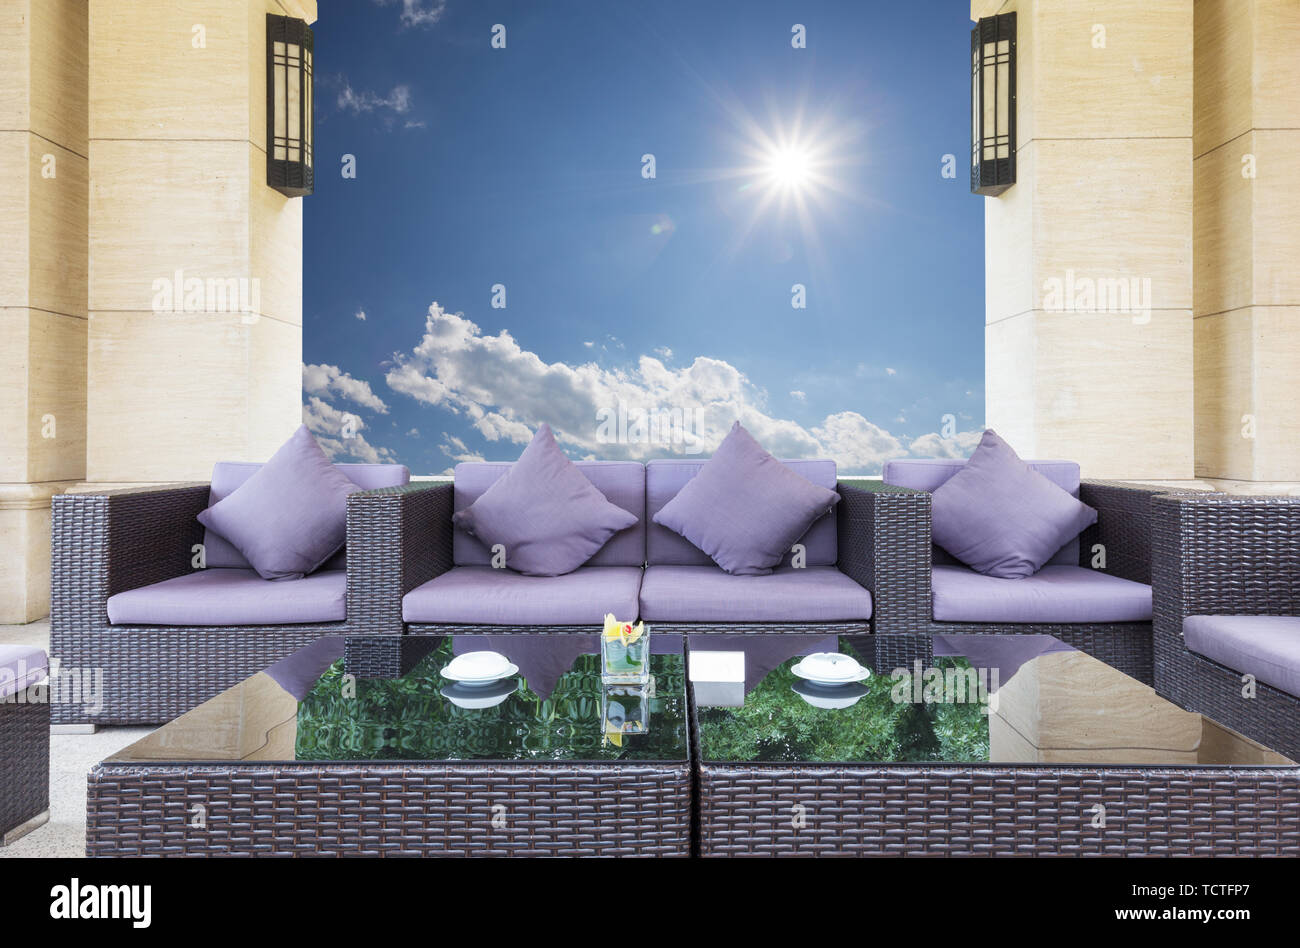 Seats And Sofas Apartments Stock Photos & Seats And Sofas ...